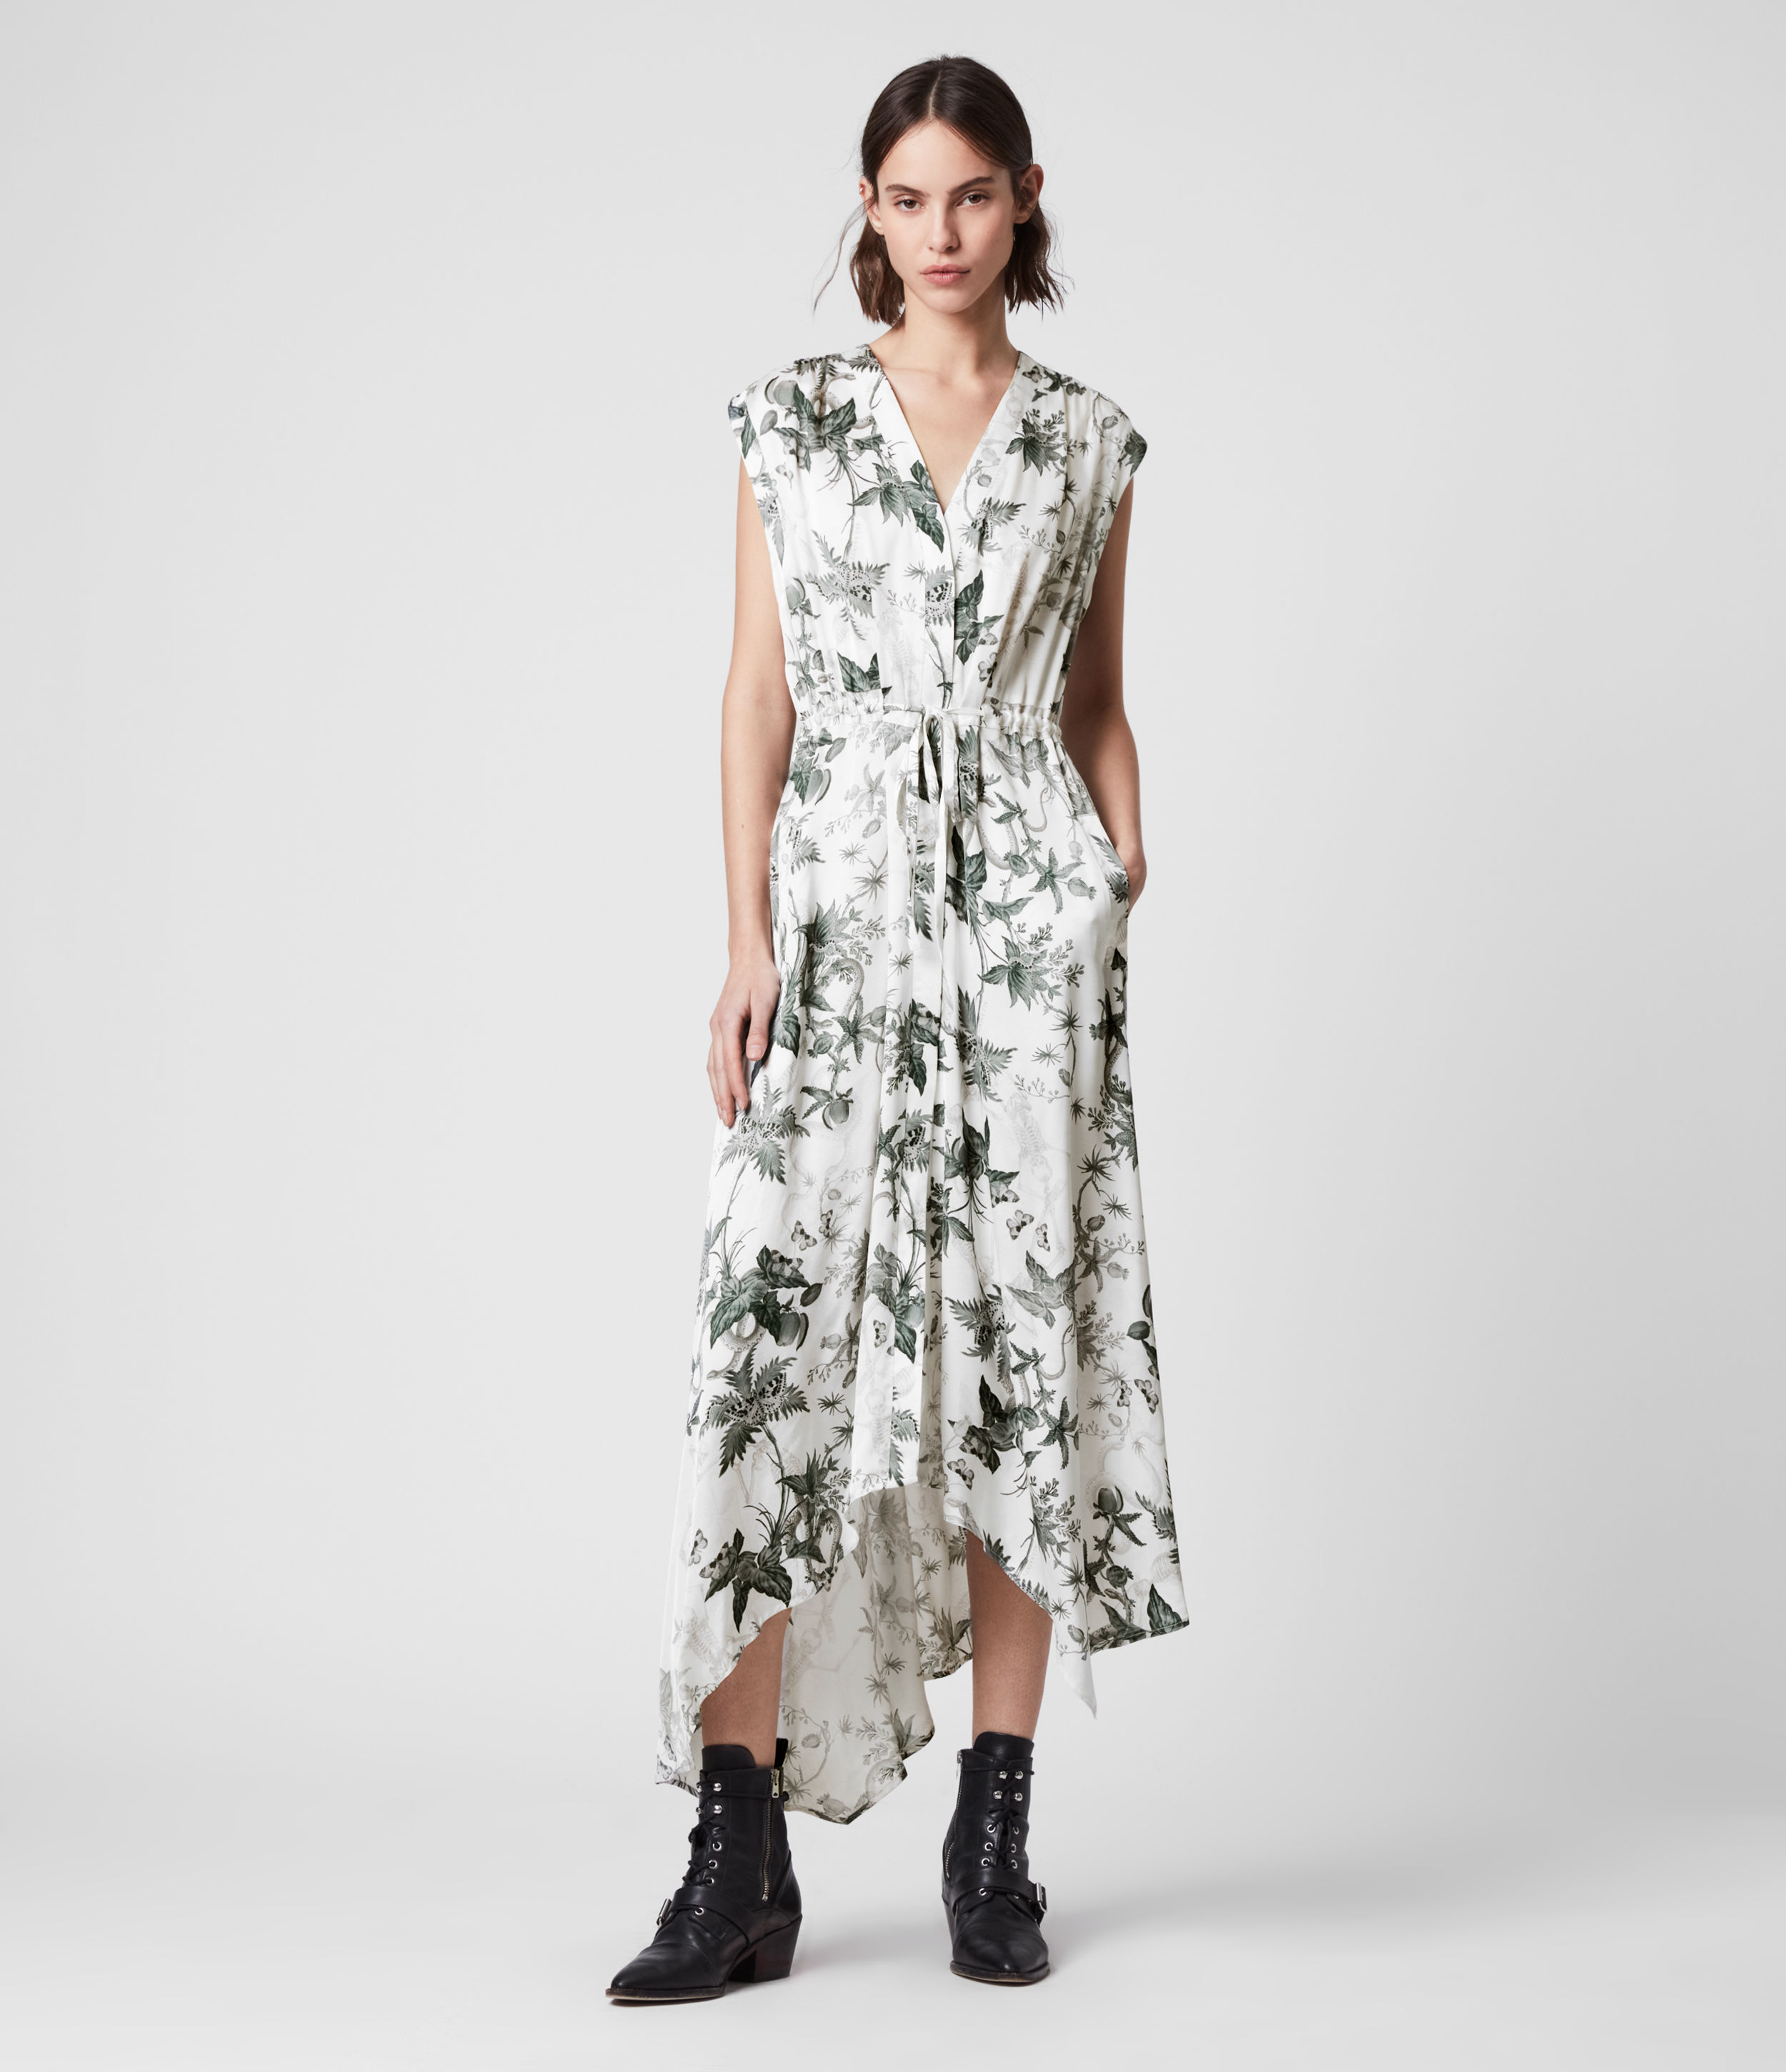 AllSaints Women's Floral Relaxed Fit Tate Evolution Dress, White and Green, Size: S